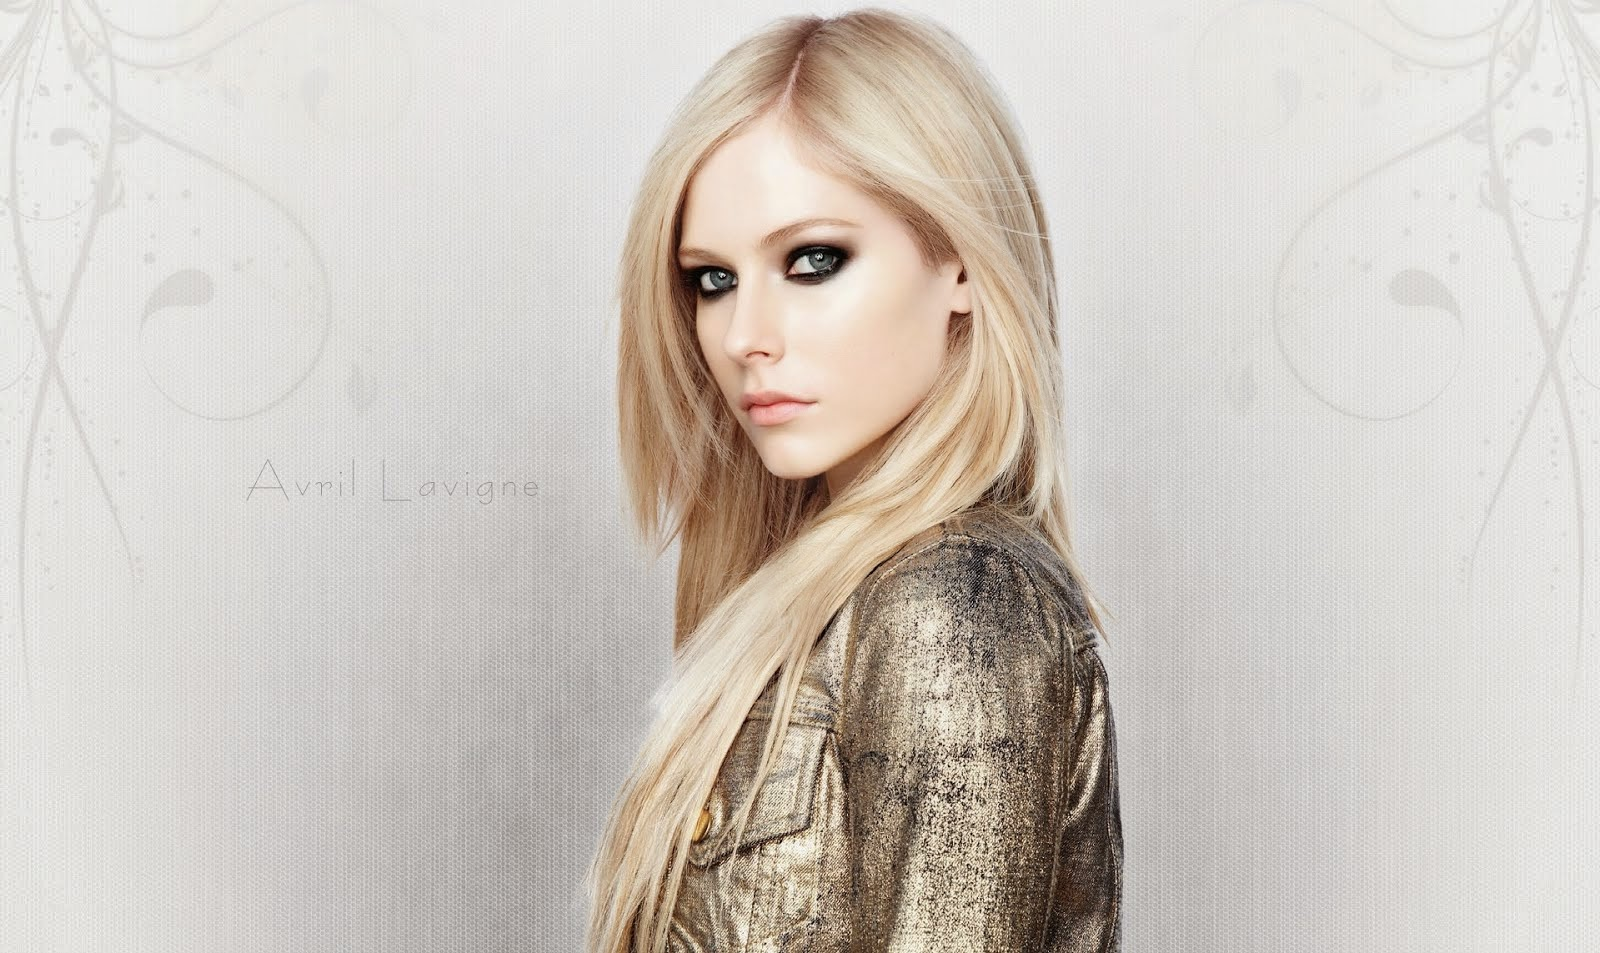 Avril Lavigne Wallpapers | Download Free High Definition Desktop Backgrounds